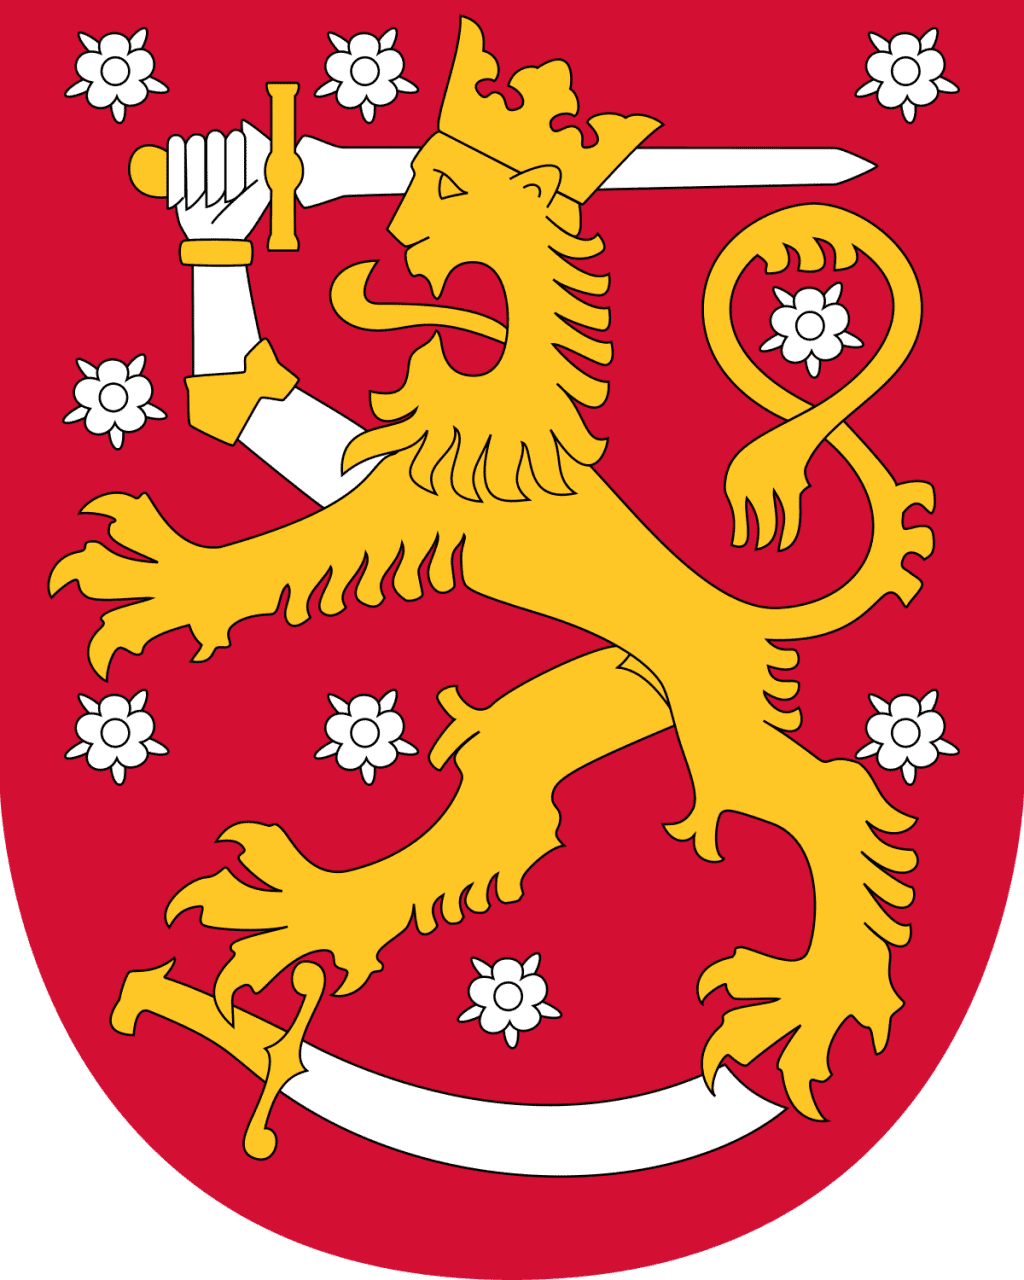 coat of arms of finland, one of the developers of the mosin nagant